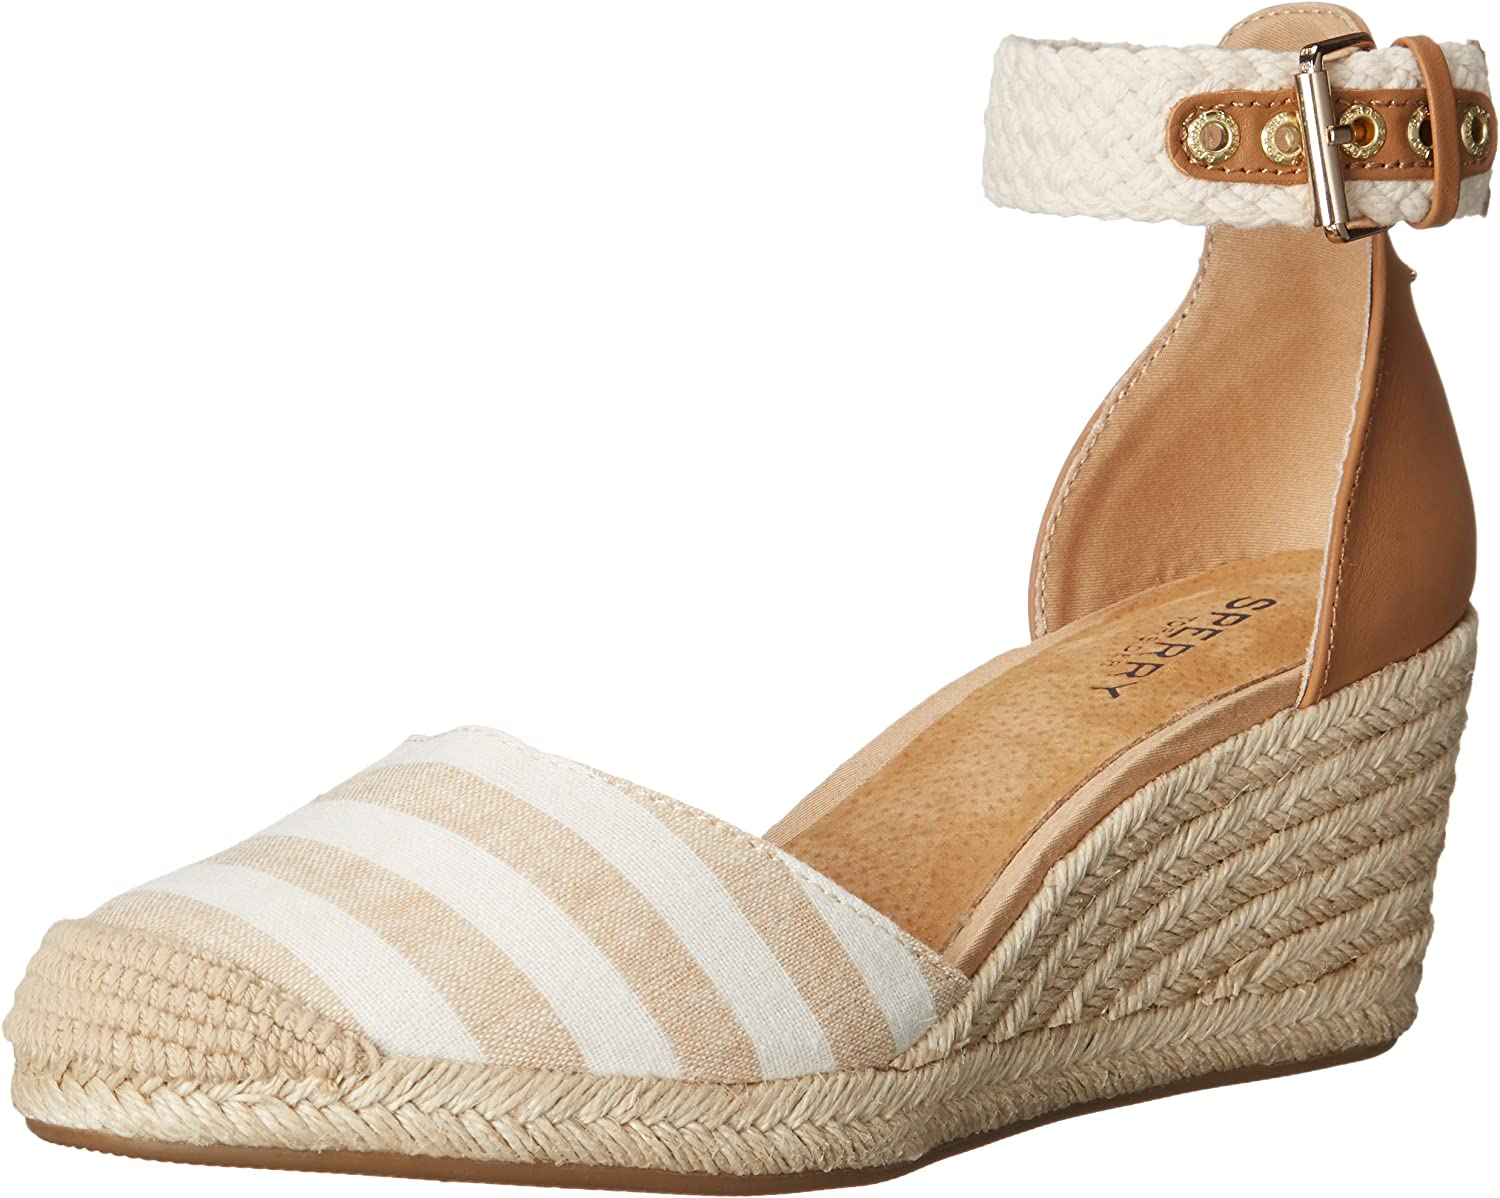 Sperry Top-Sider Women's Valencia Wedge